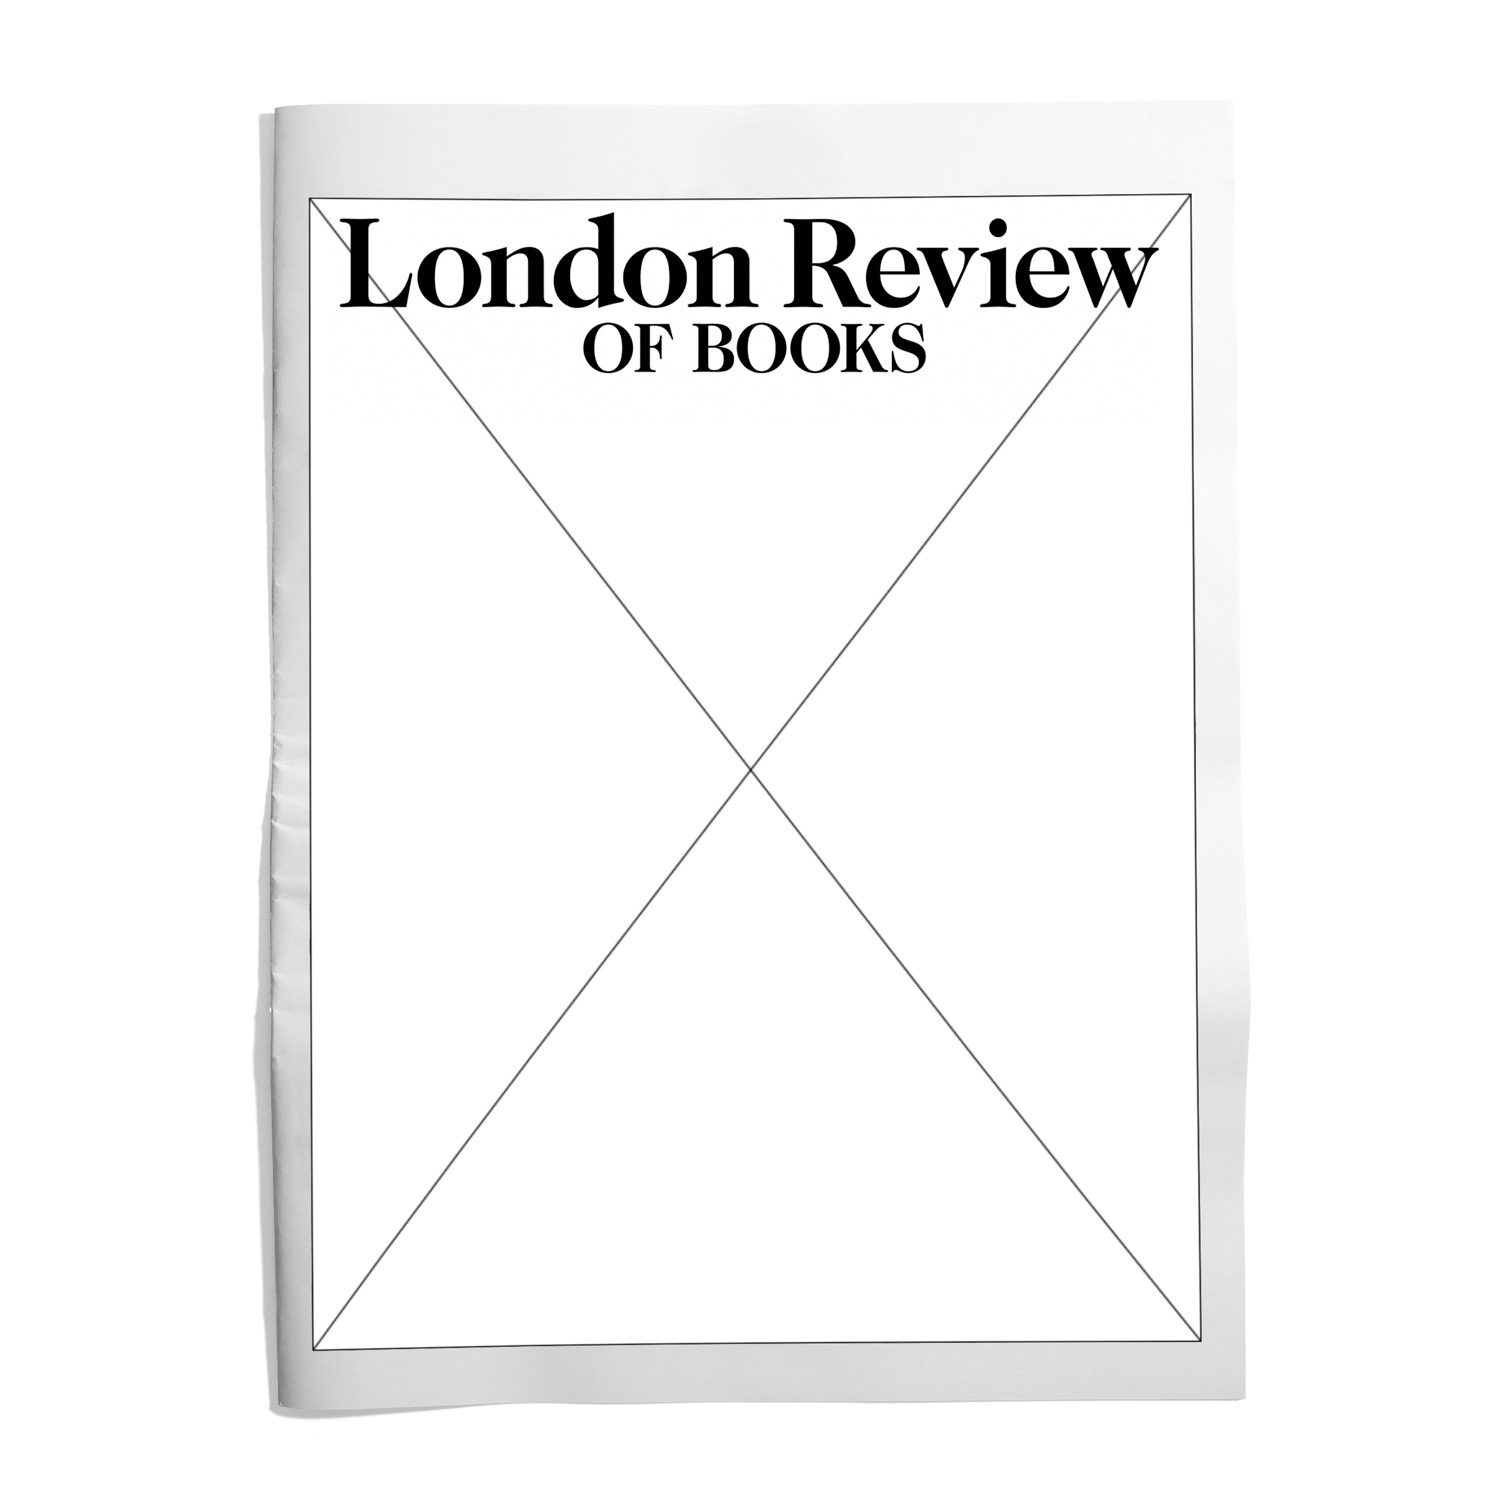 The London Review of Books 43/8 22.4.2021